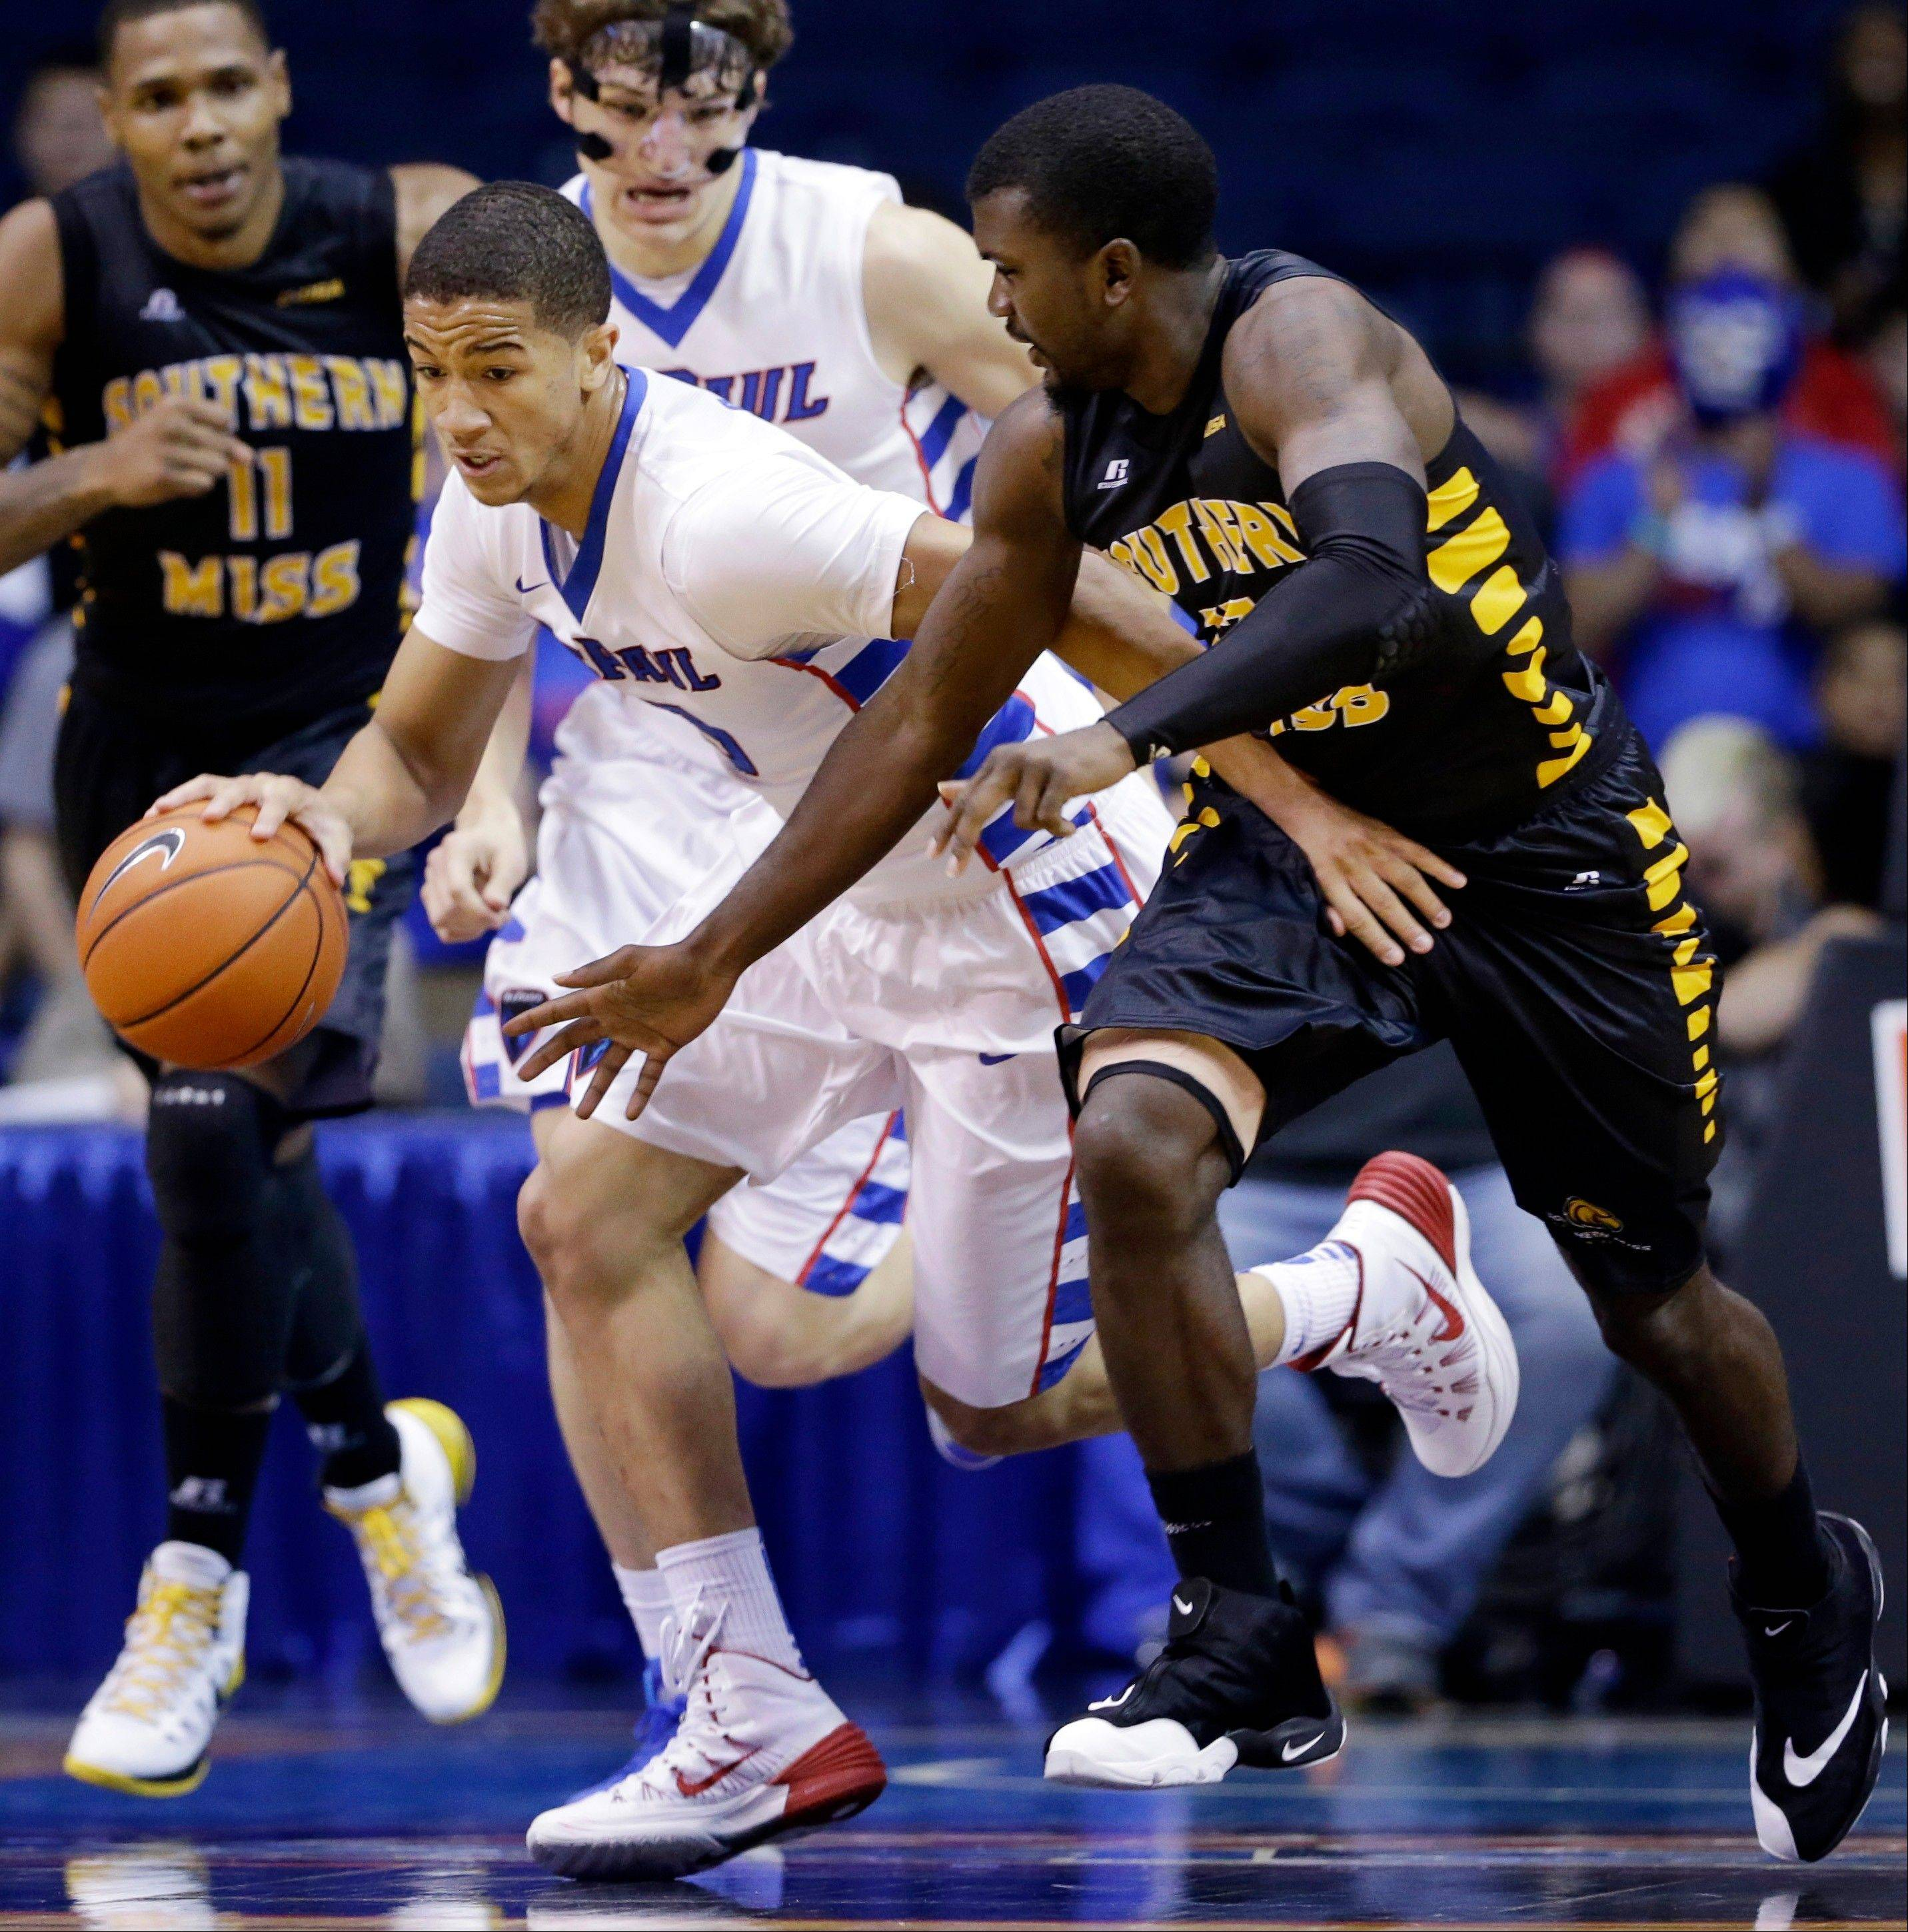 Freshman guard Billy Garrett Jr. helped stabilize the DePaul offense Wednesday night against Southern Mississippi at the Allstate Arena.